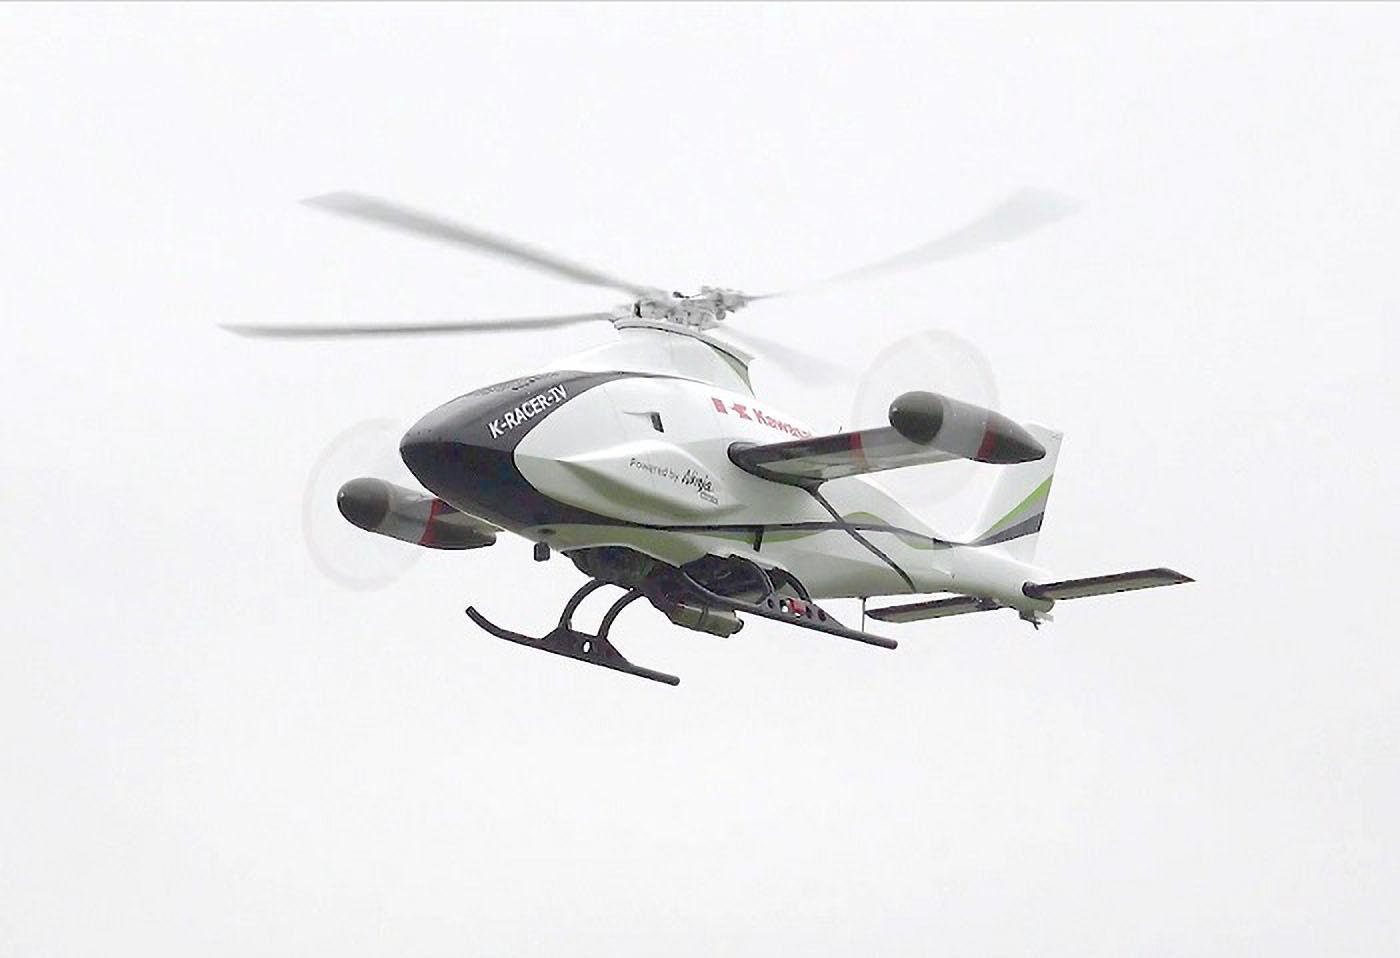 Kawasaki has tested its K-Racer autonomous compound helicopter, powered by the 300-horsepower, supercharged H2R motor